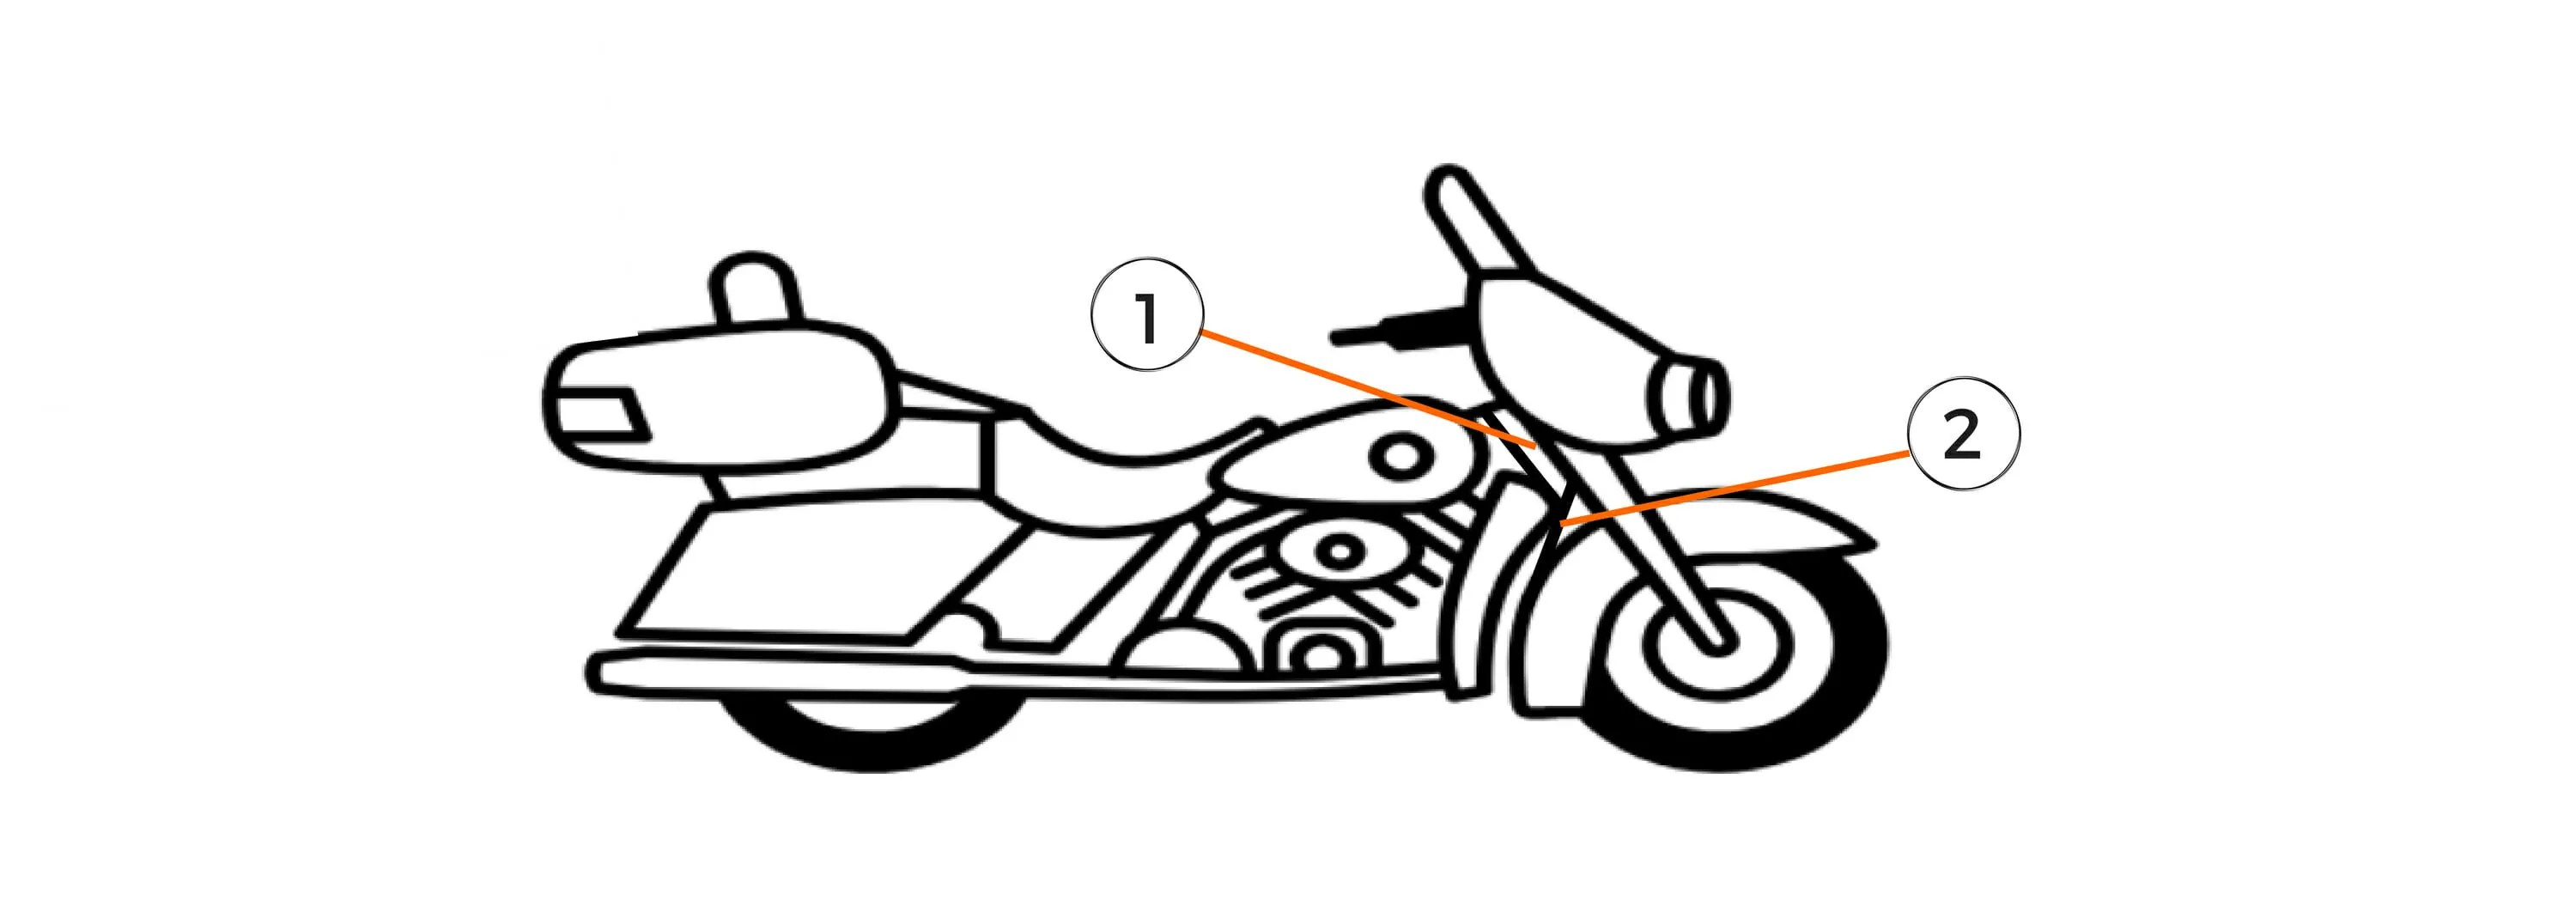 Vin Number Location On Yamaha Motorcycles | Wiring Diagram Database